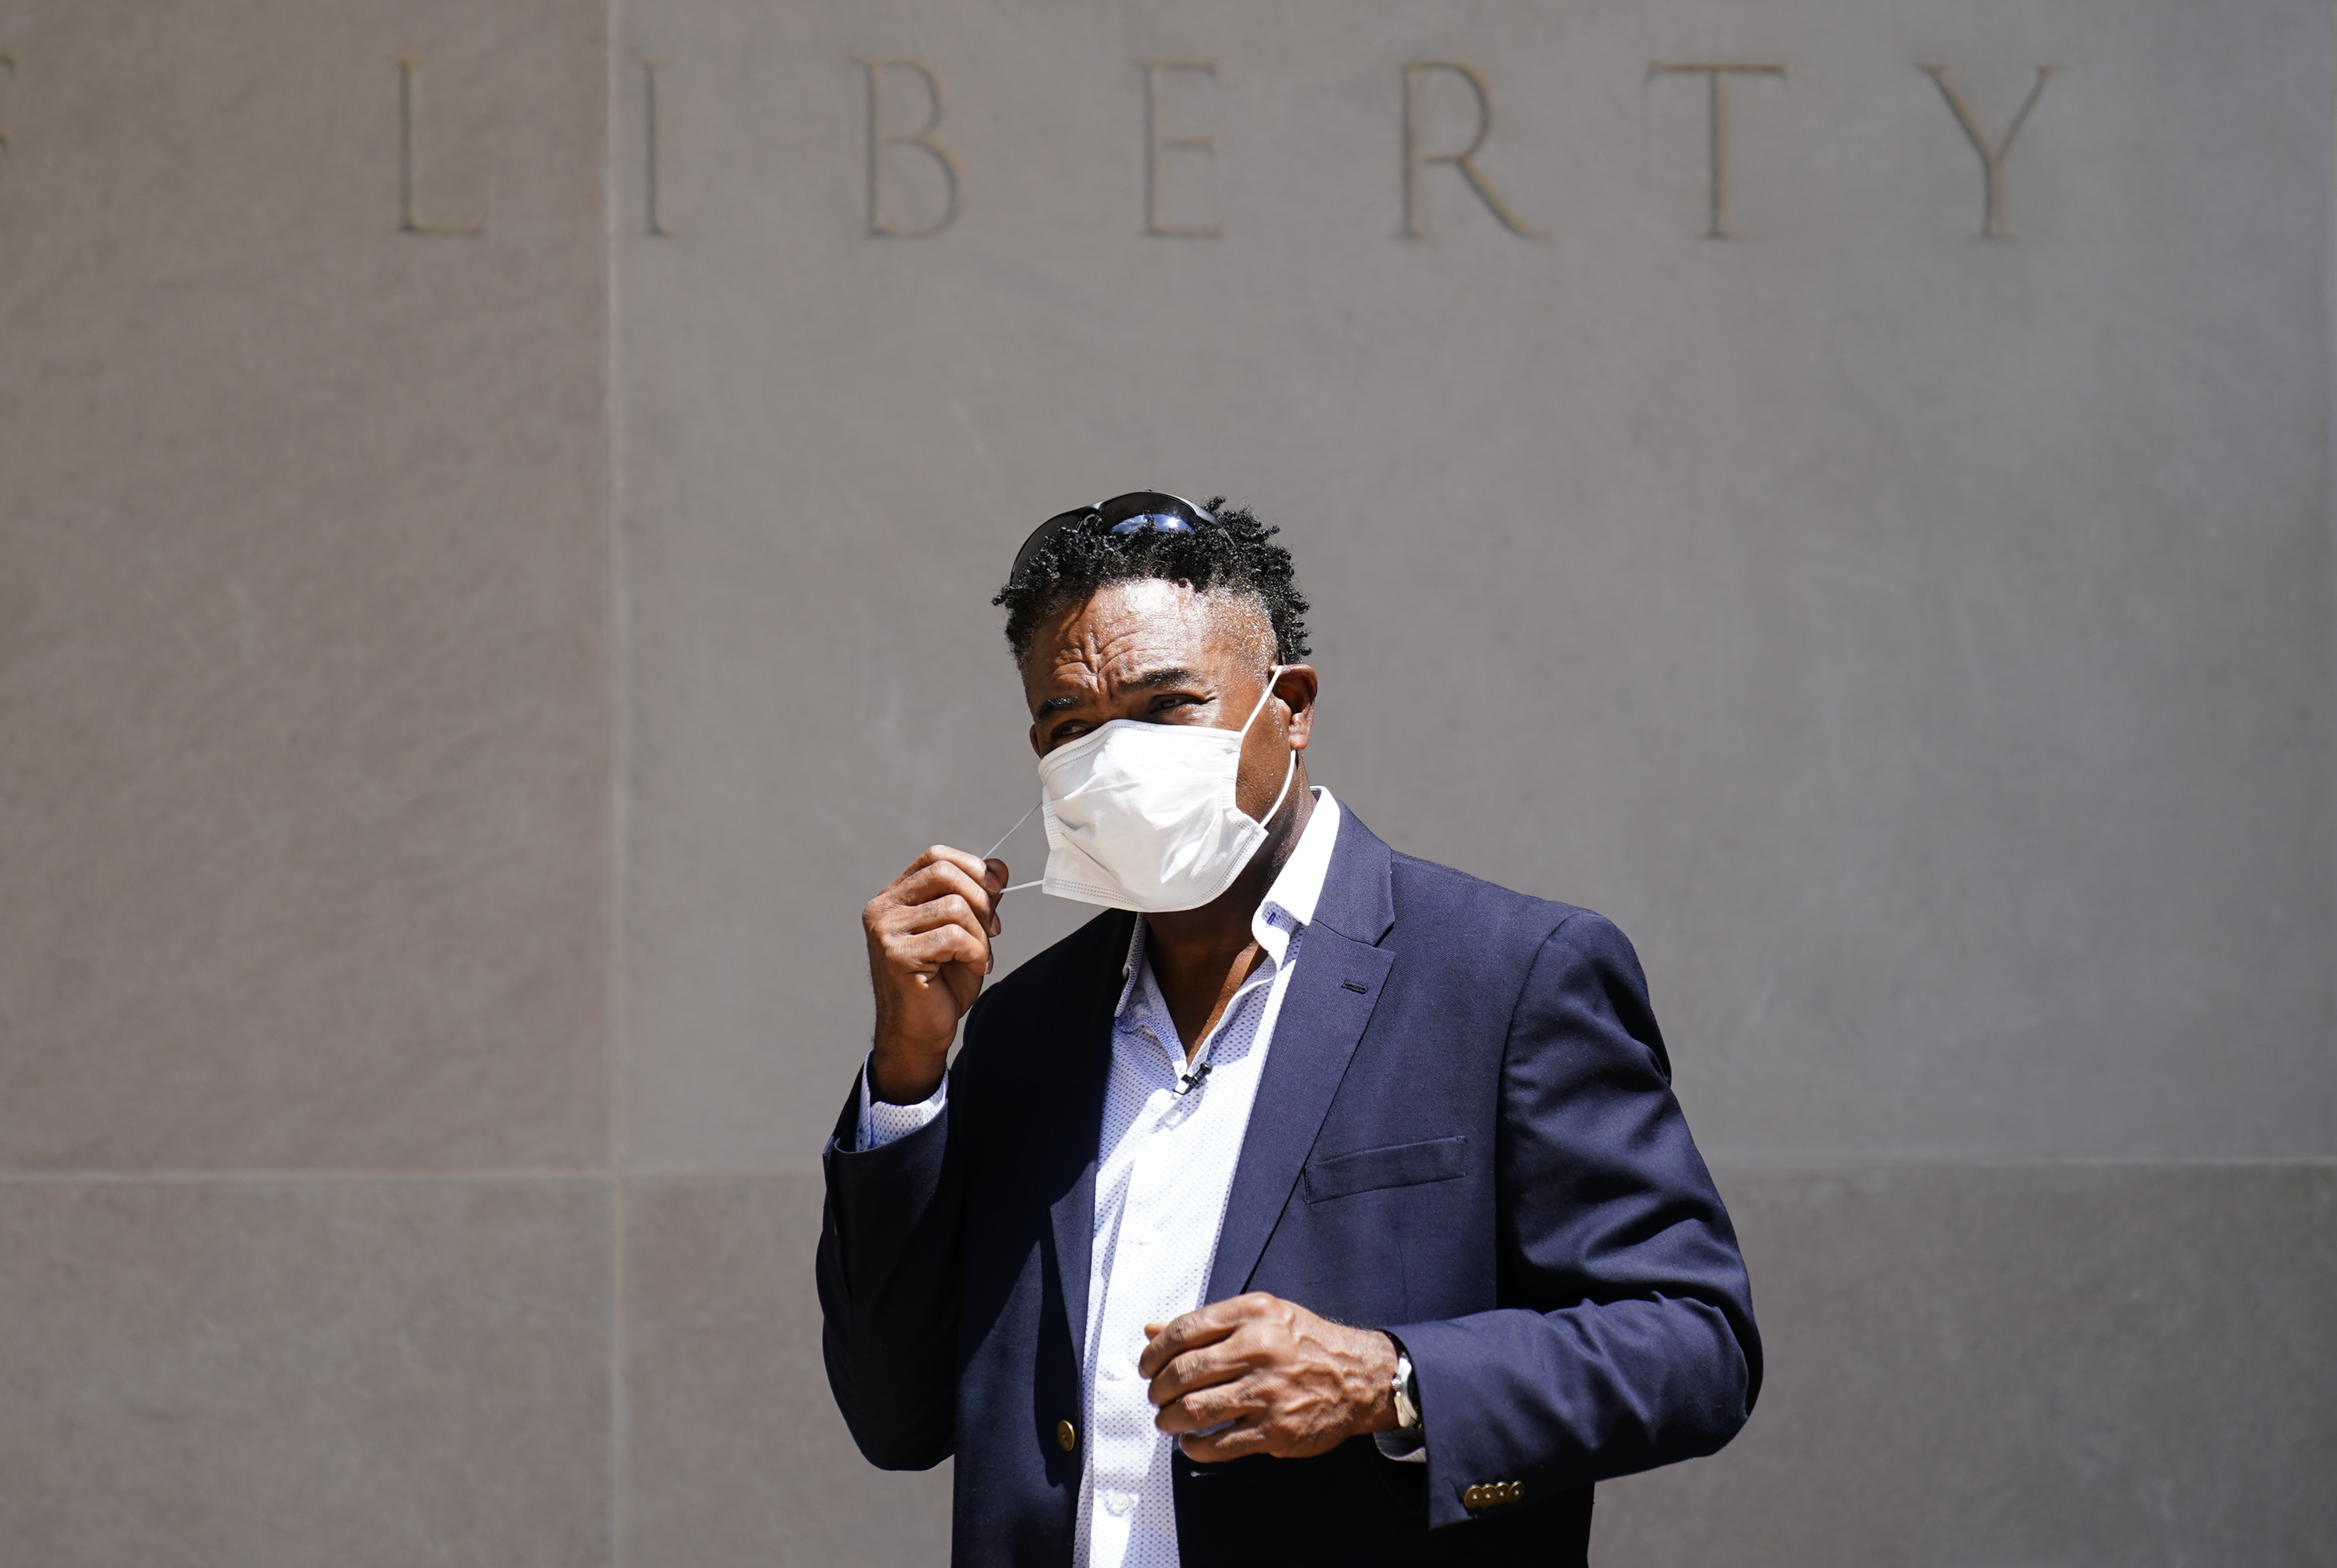 Former NFL player Ken Jenkins exits the building after delivering tens of thousands of petitions demanding equal treatment for everyone involved in the settlement of concussion claims against the NFL, to the federal courthouse in Philadelphia, Friday, May 14, 2021.